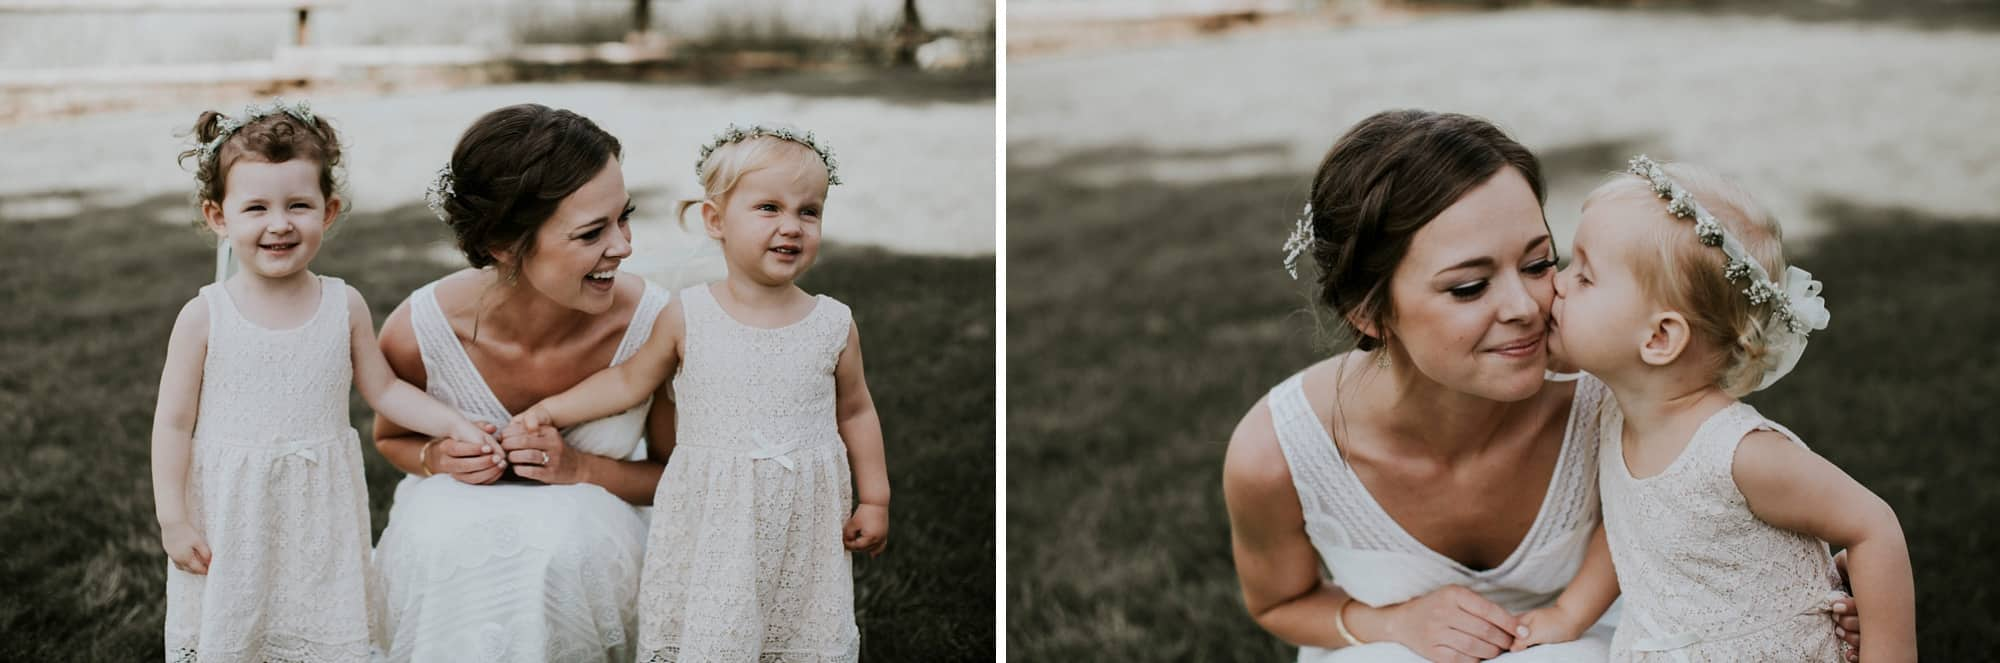 maisie-morgan-spokane-washington-pacific-northwest-backyard-wedding-00021